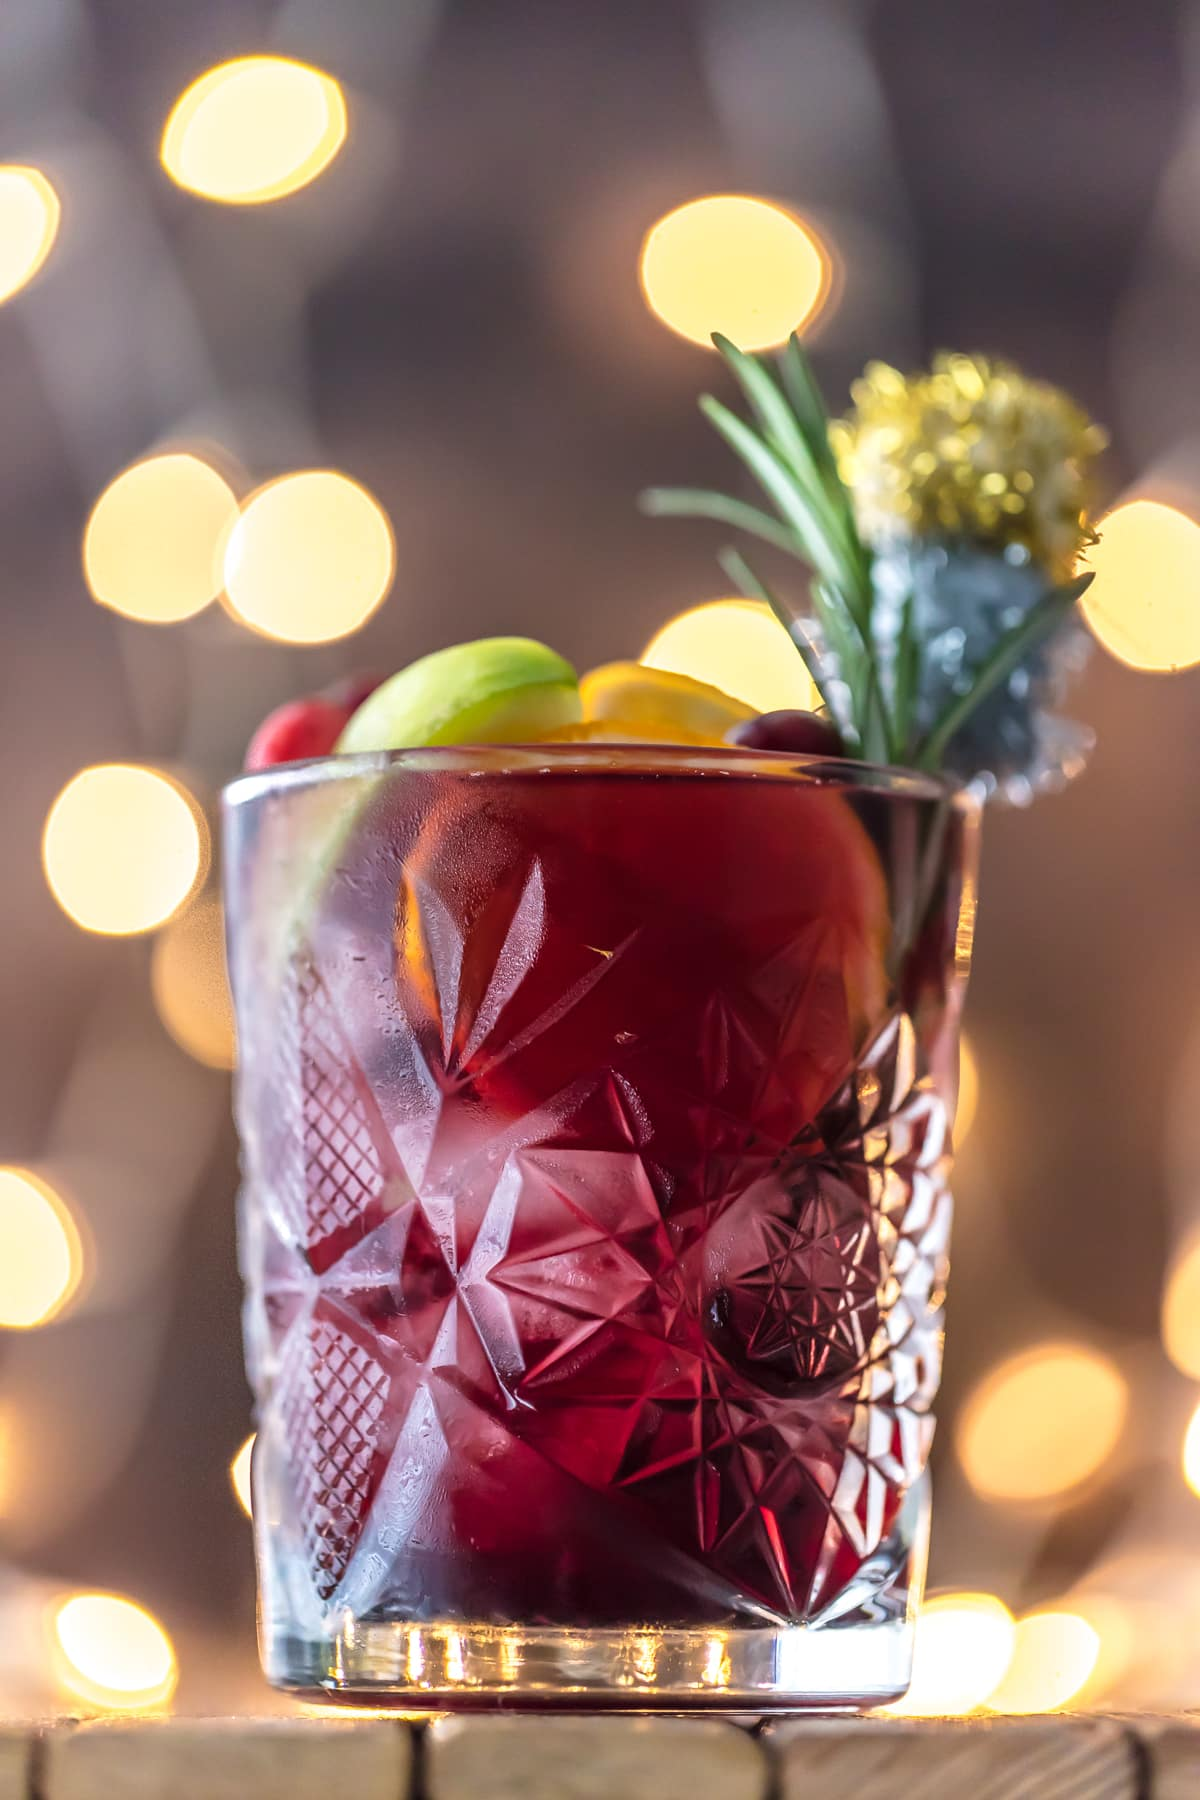 A glass of holiday sangria garnished with rosemary and fruit